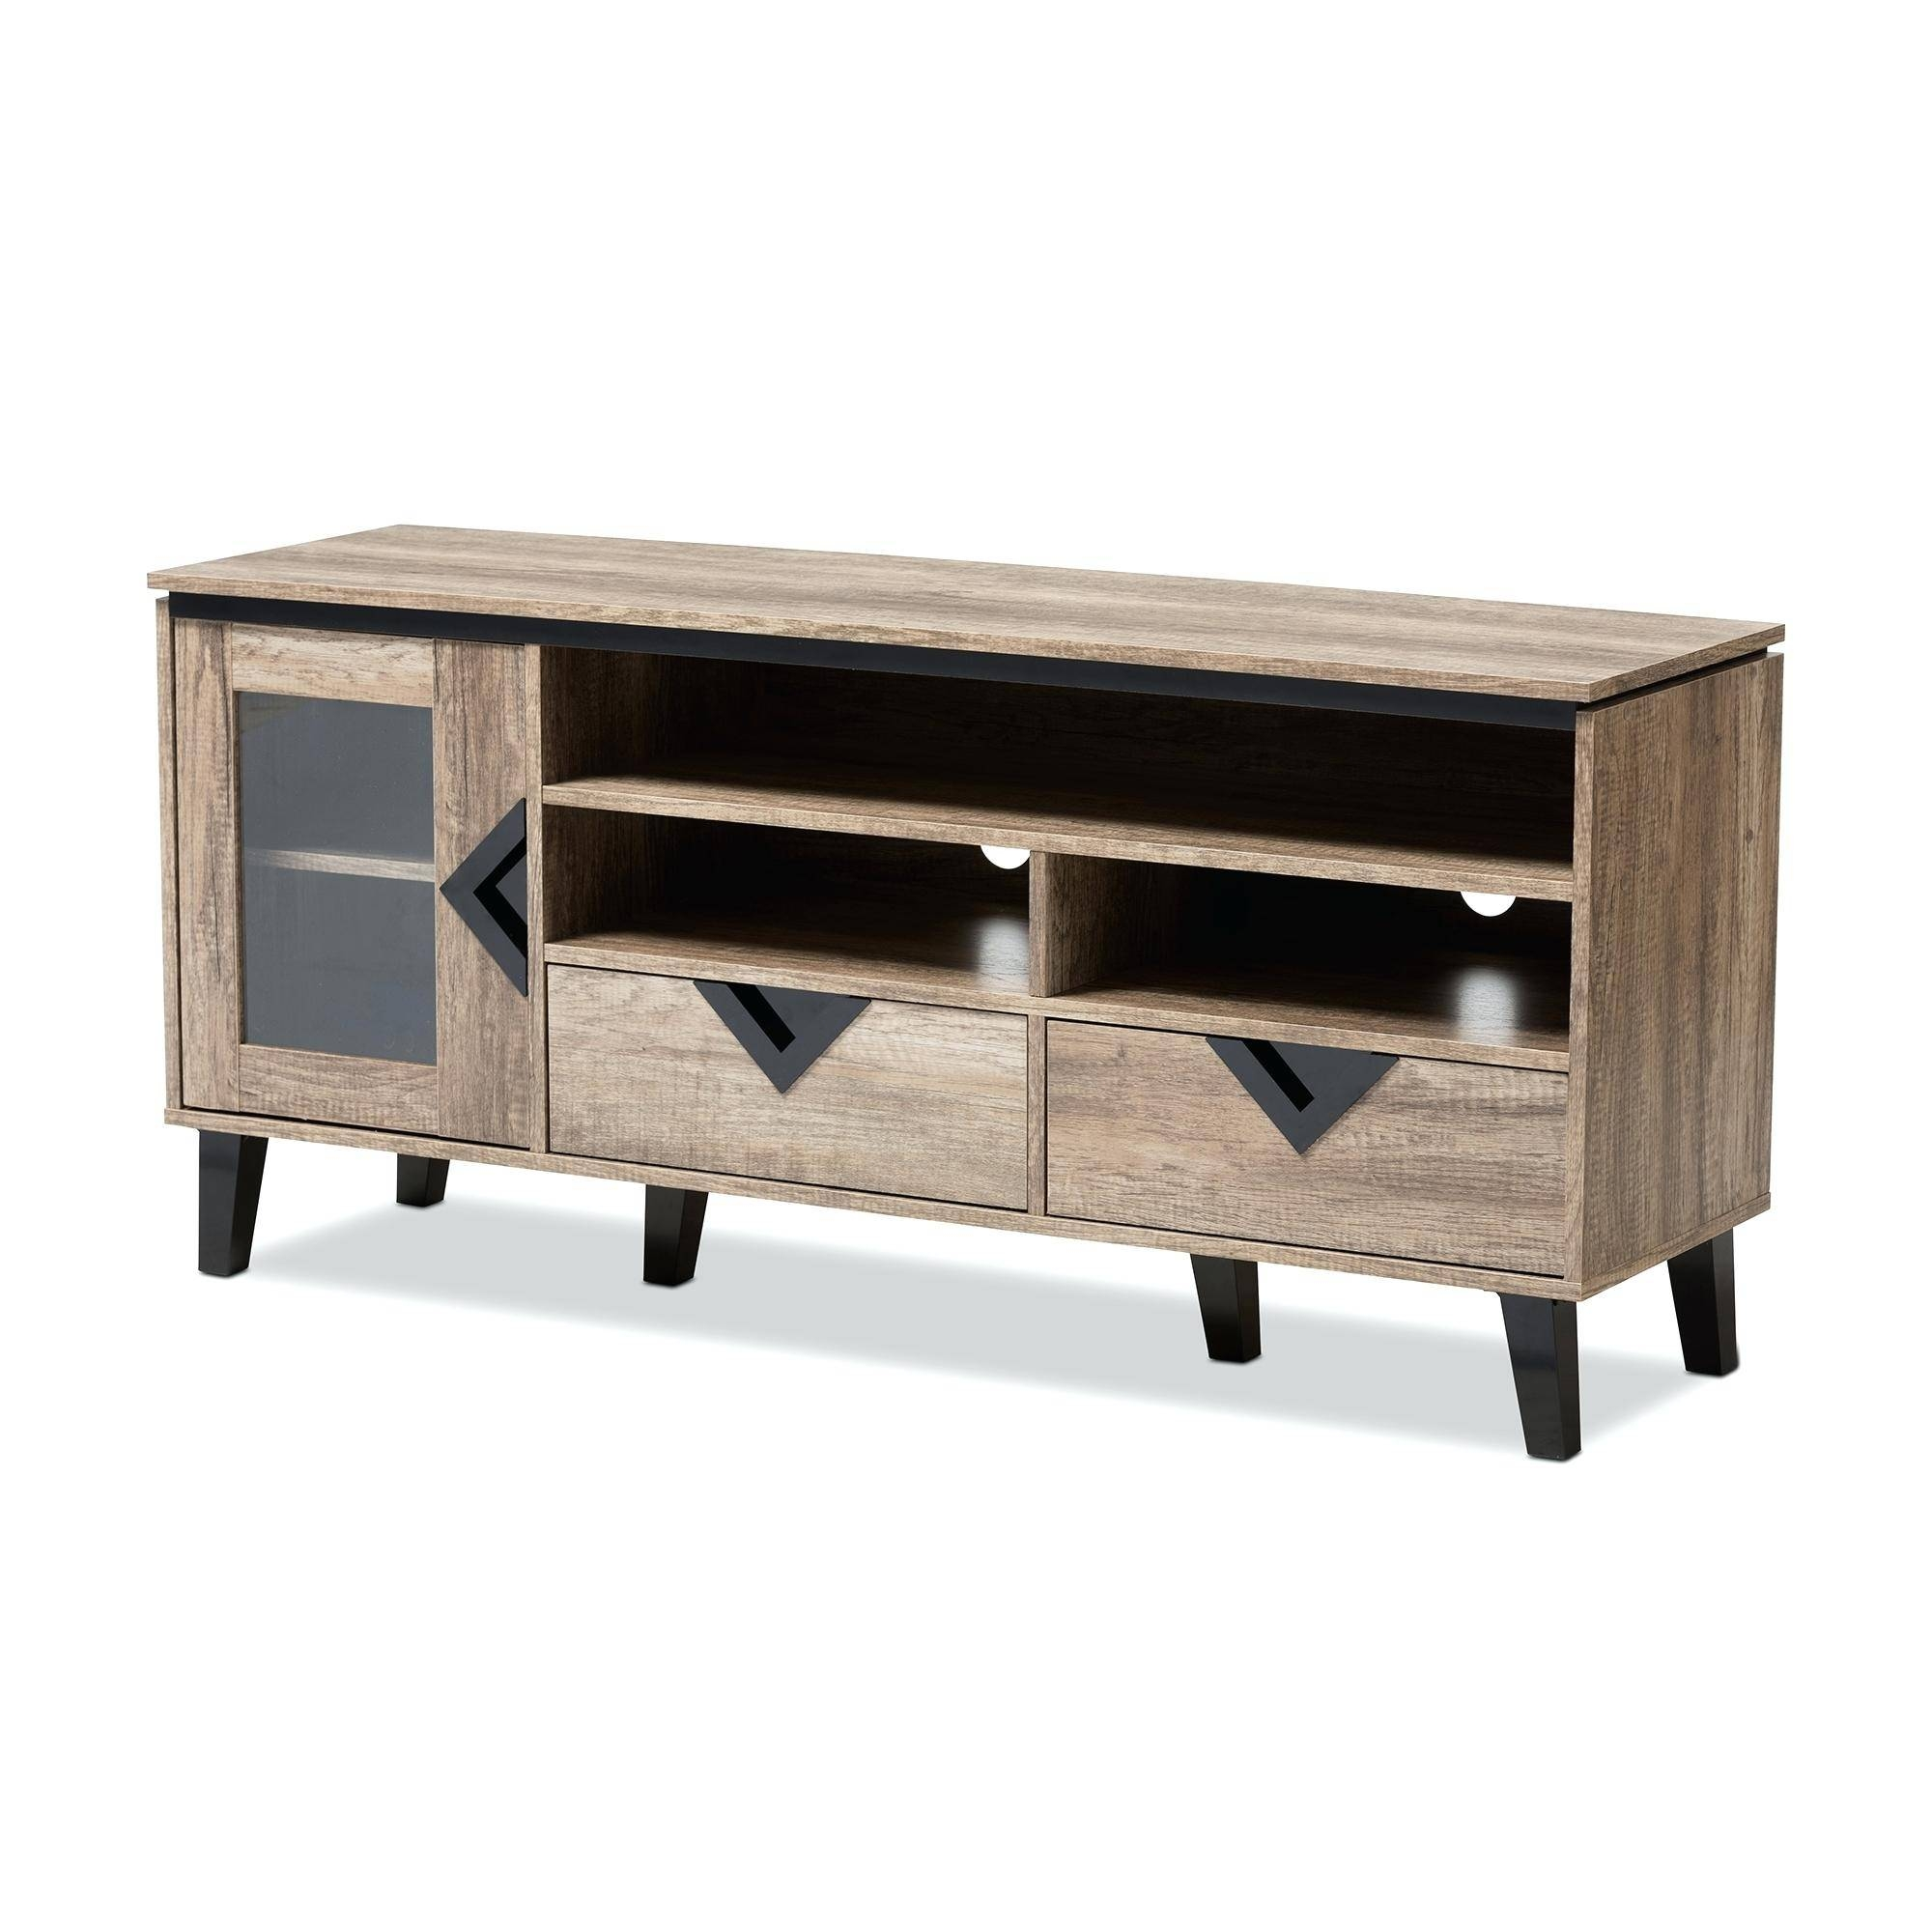 Tv Stand : Tv Stands Tv Stand Oak Oak Tv Stands For Flat Screen with Light Oak Tv Stands Flat Screen (Image 14 of 15)